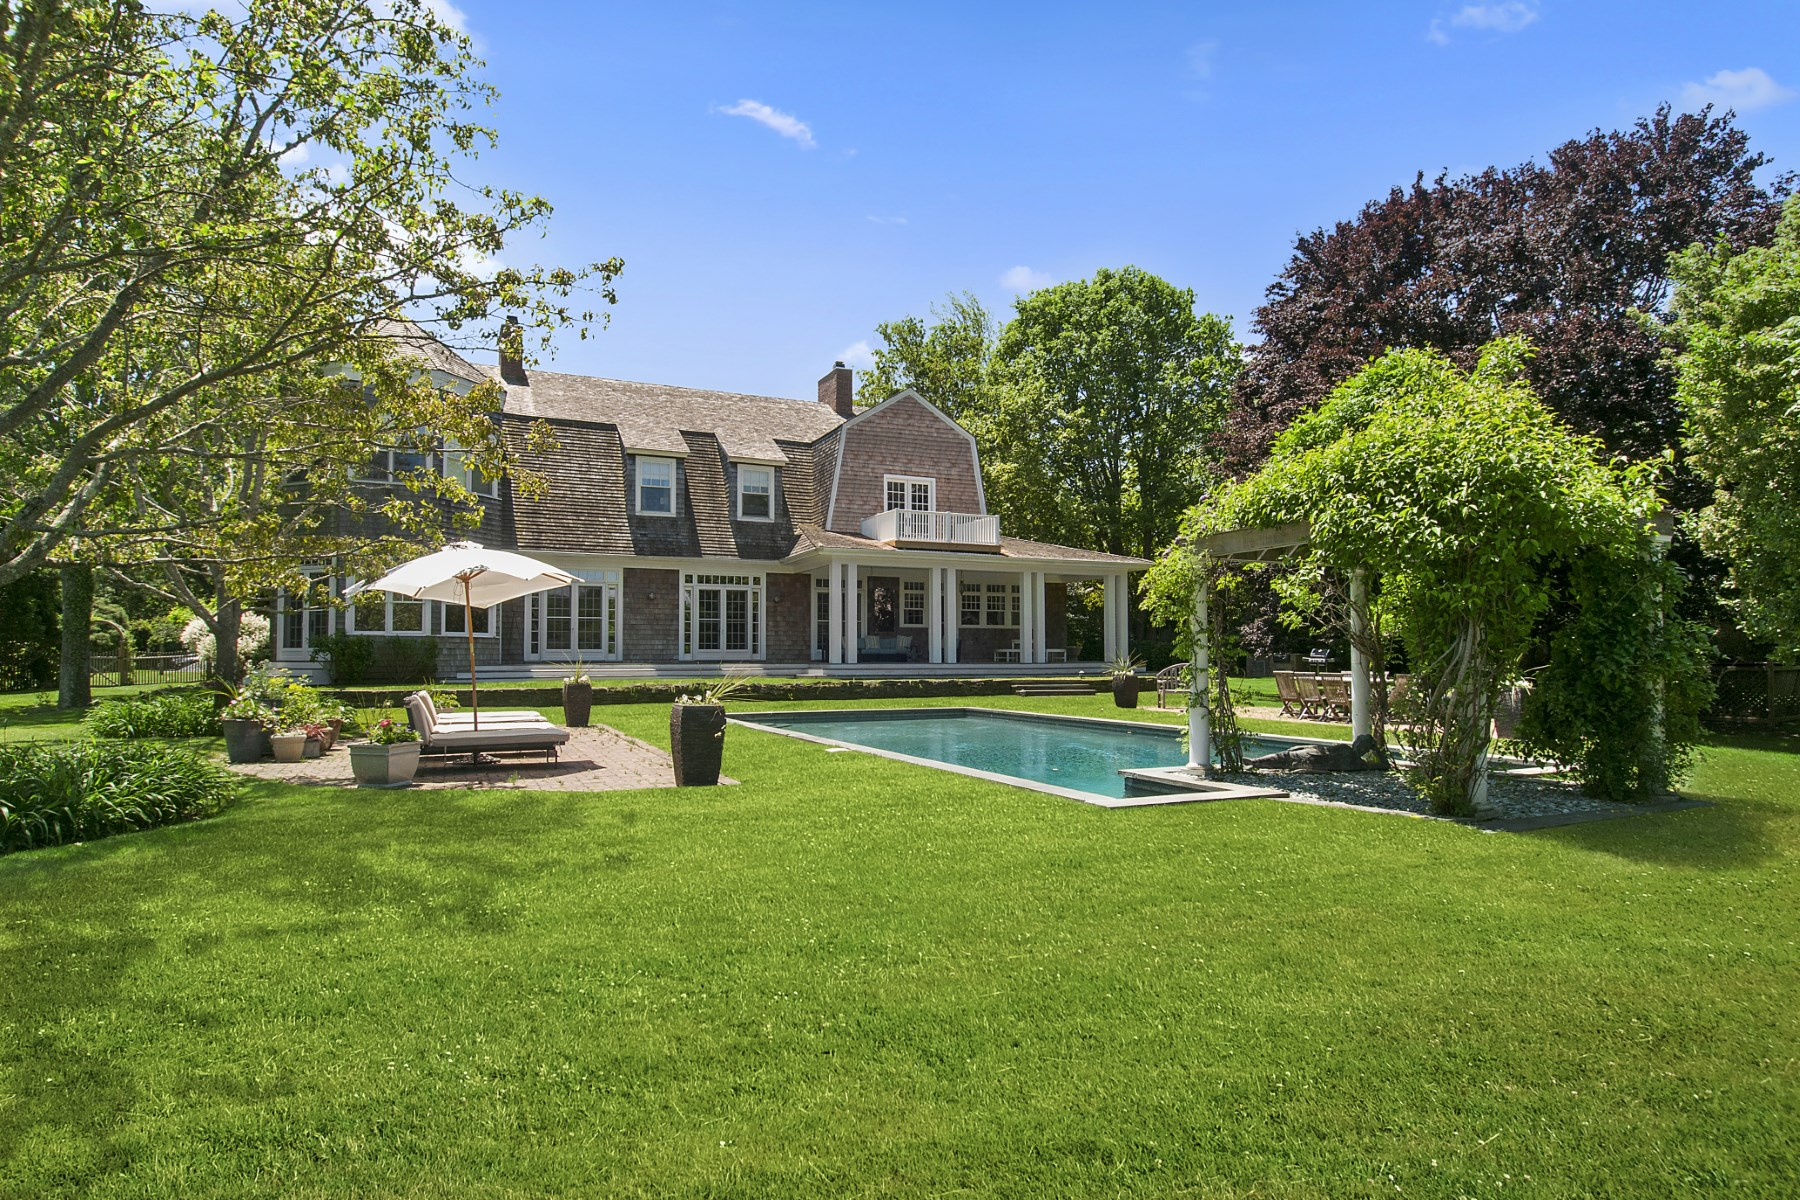 Single Family Home for Rent at Egypt Lane Compound with Guest Cottage East Hampton Village, East Hampton, New York, 11937 United States